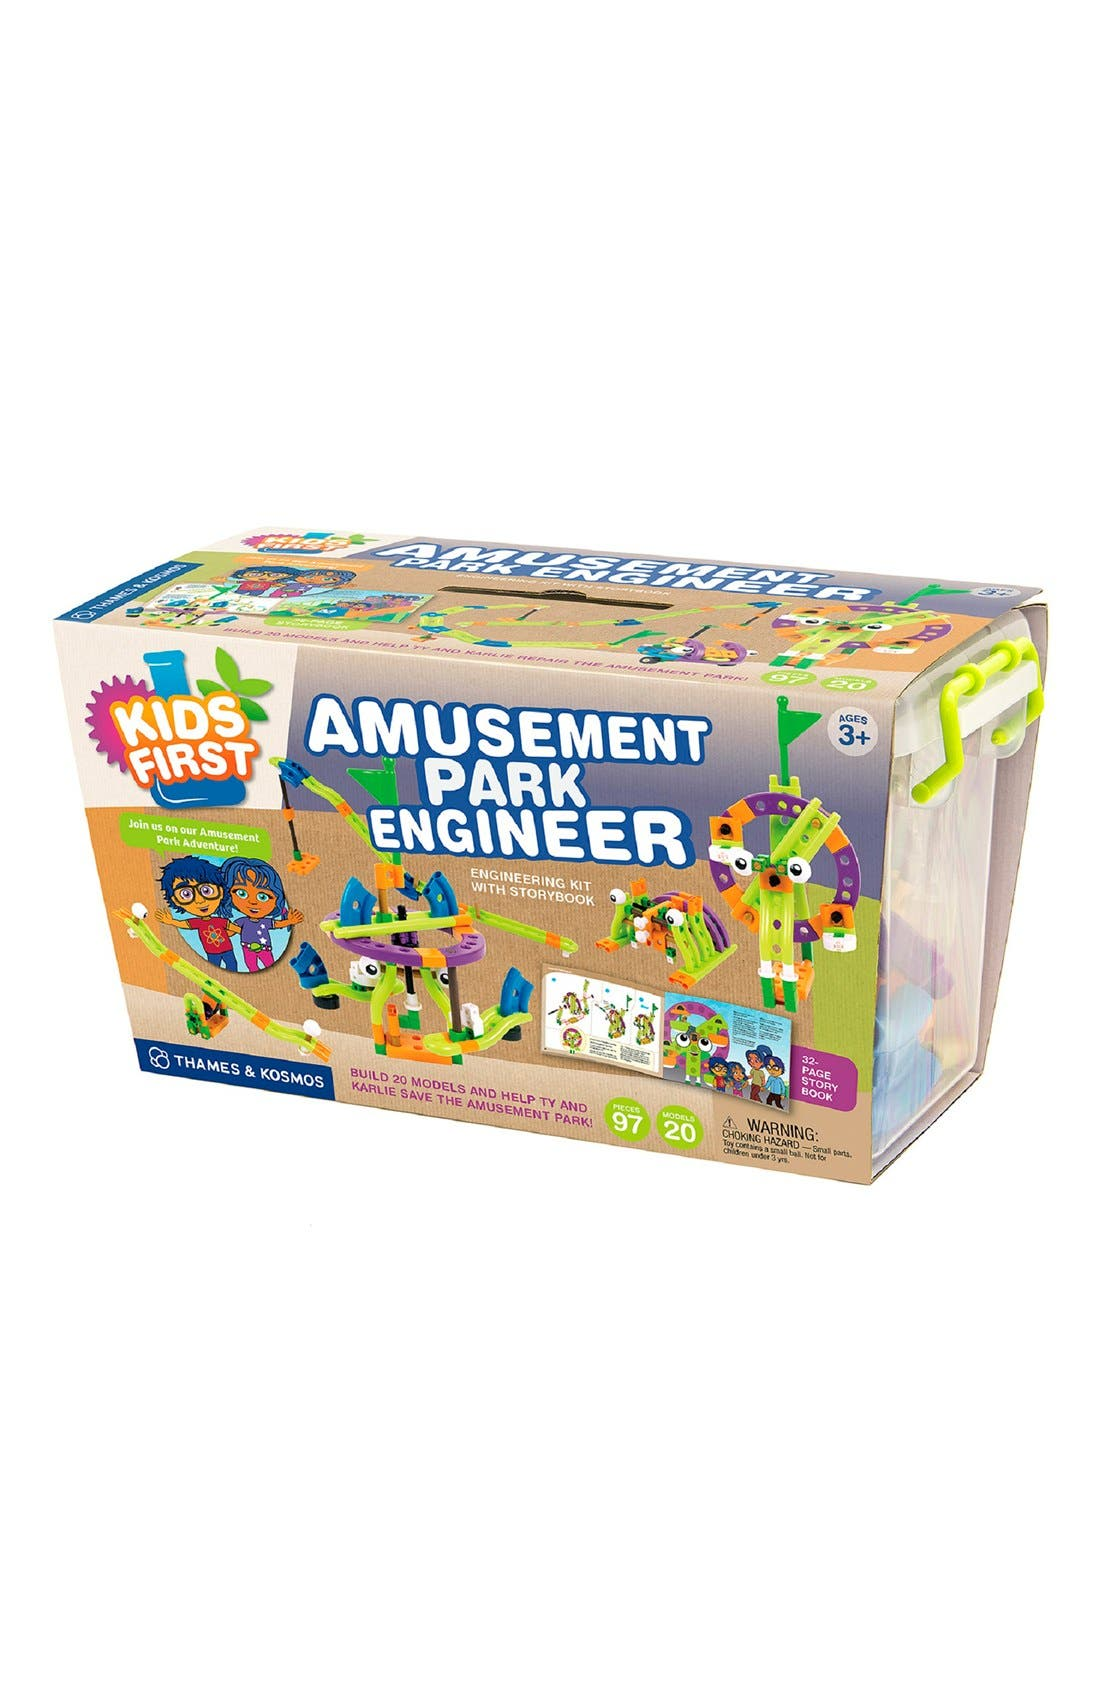 'Amusement Park Engineer' Experiment Kit,                             Main thumbnail 1, color,                             Blue